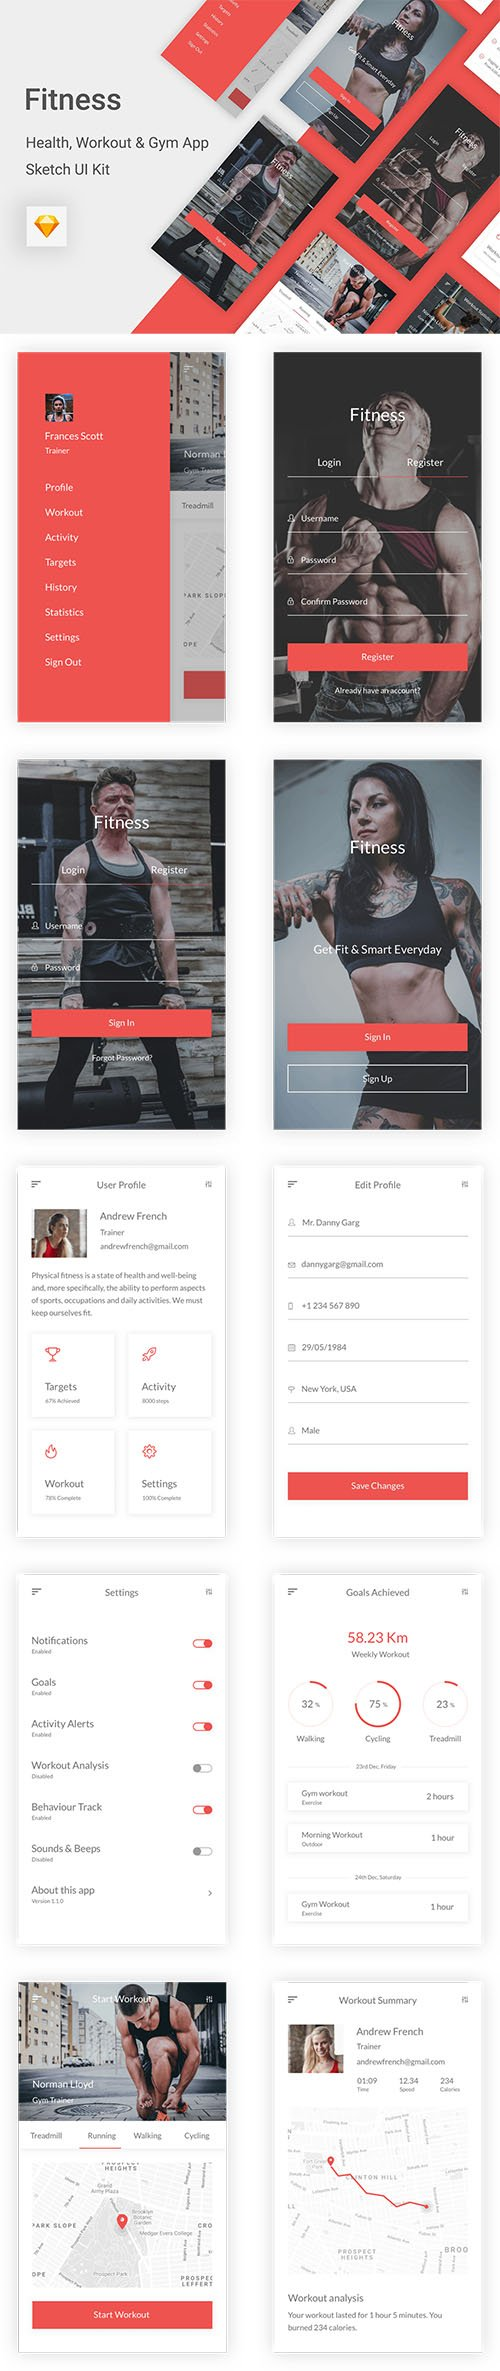 Fitness - Health, Workout & Gym UI Kit for Sketch